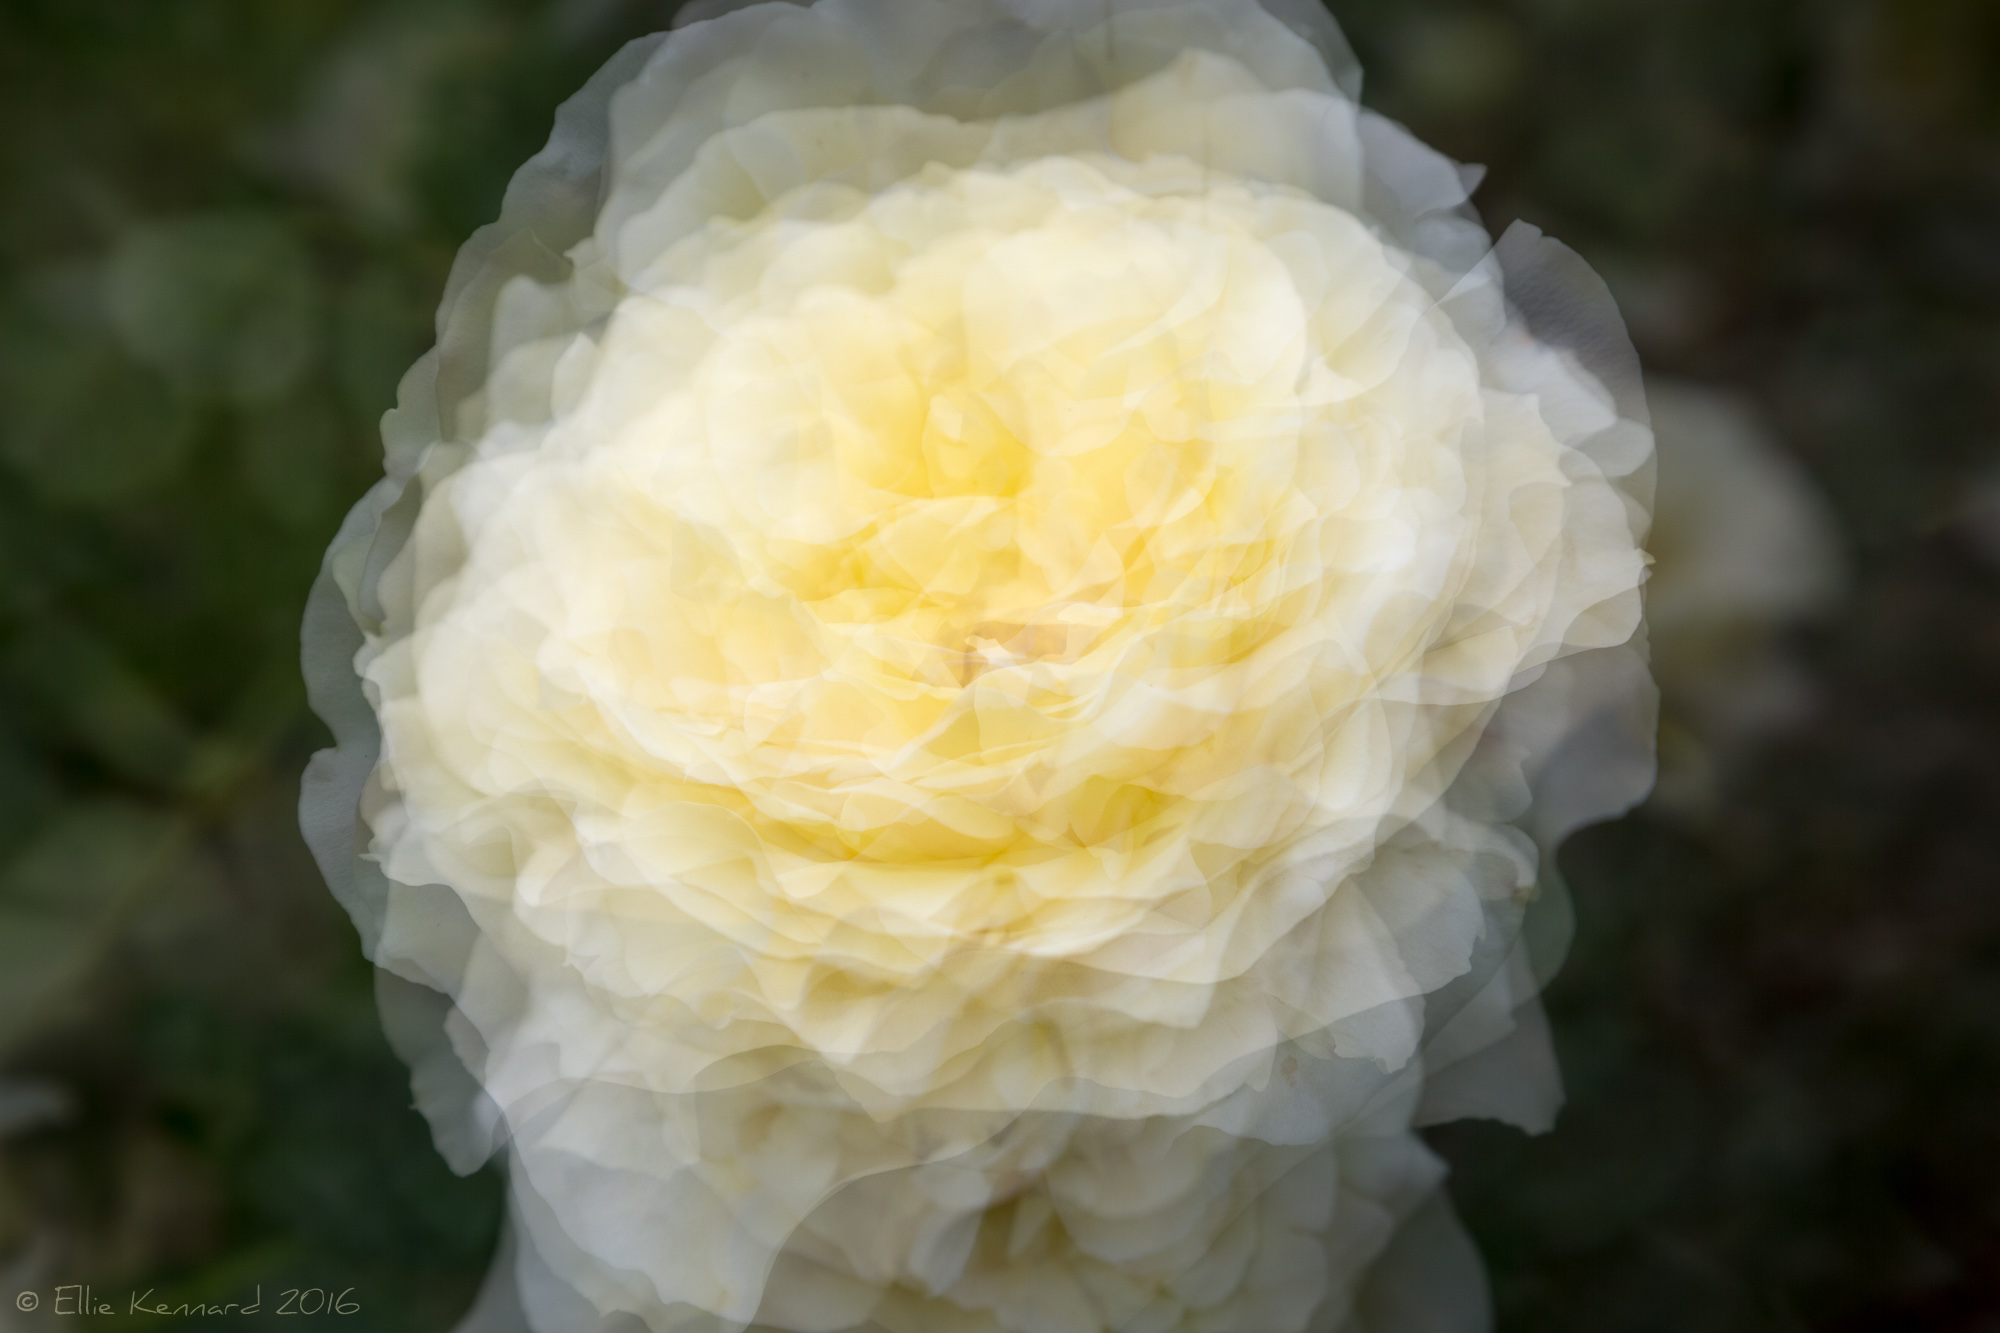 White Rose's Glowing Heart of Summer : Ellie Kennard 2016